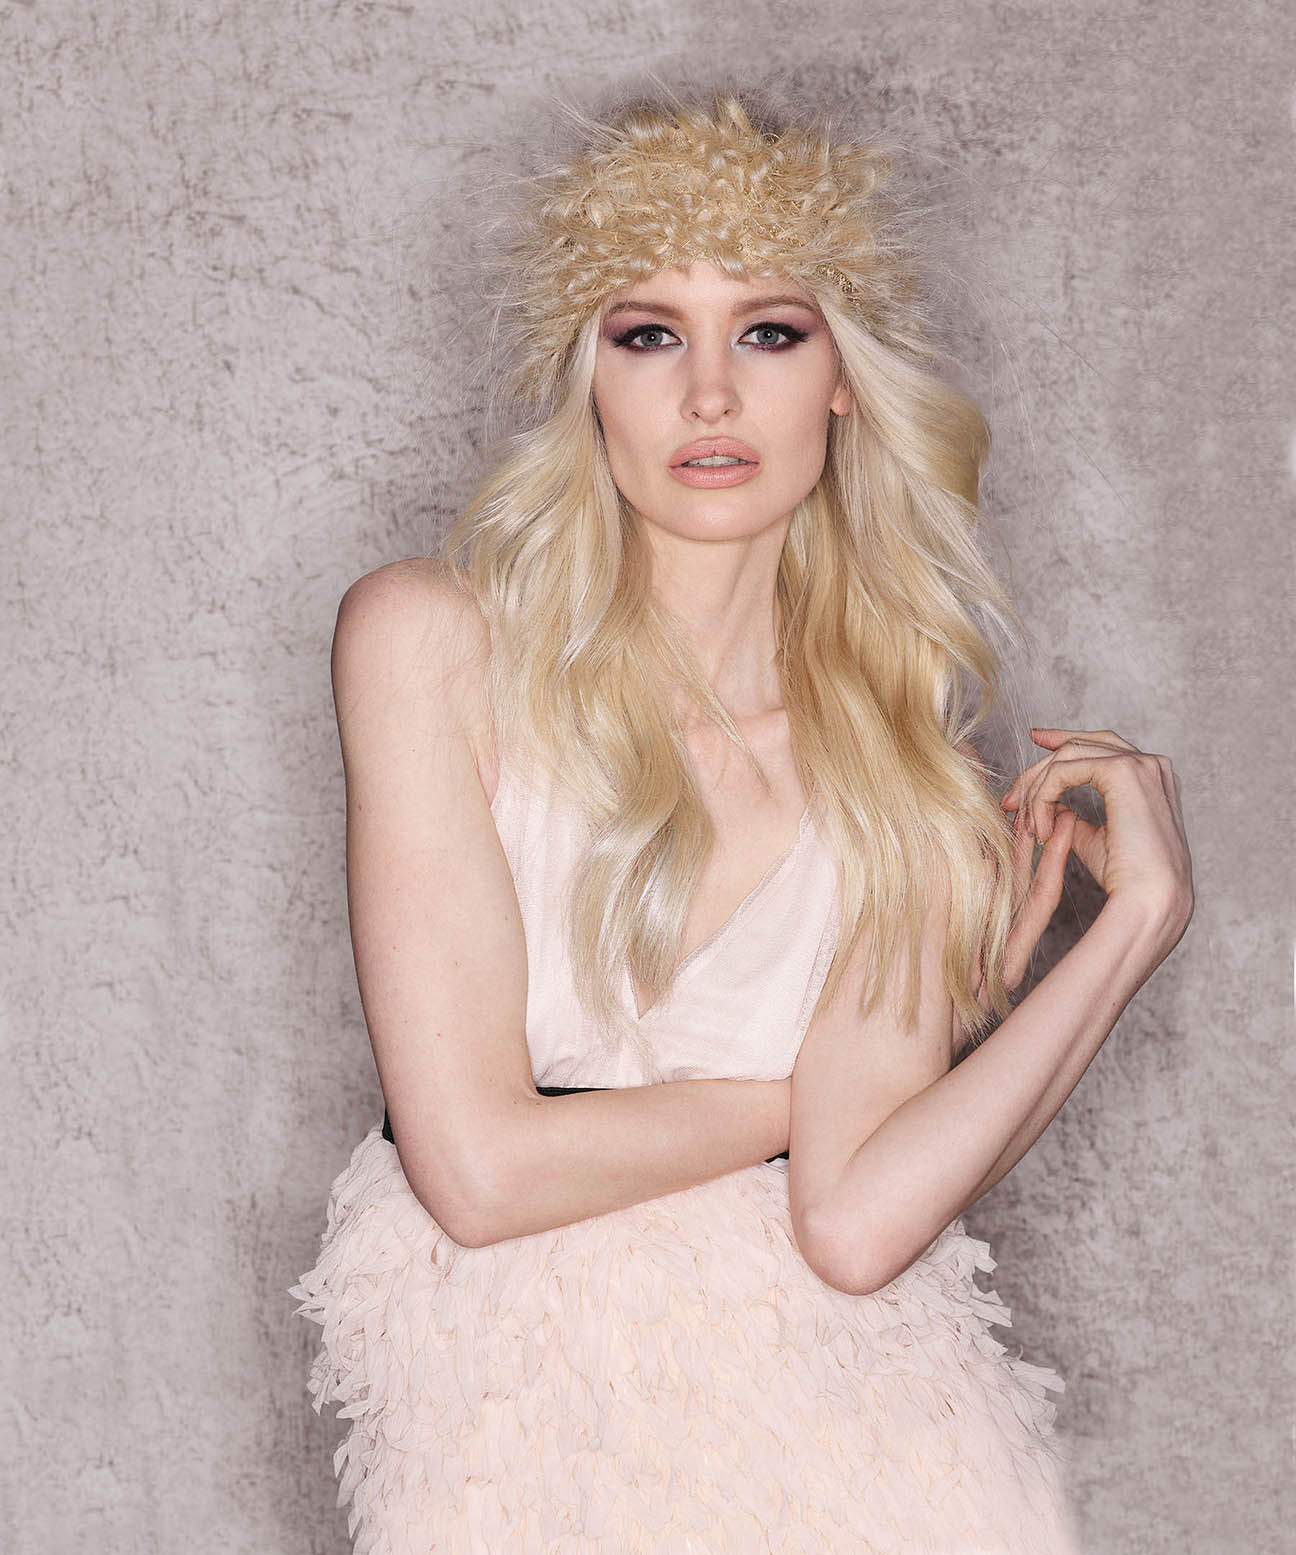 Great Lengths Artists Create Looks from Soft & Sexy to Strong & Defined